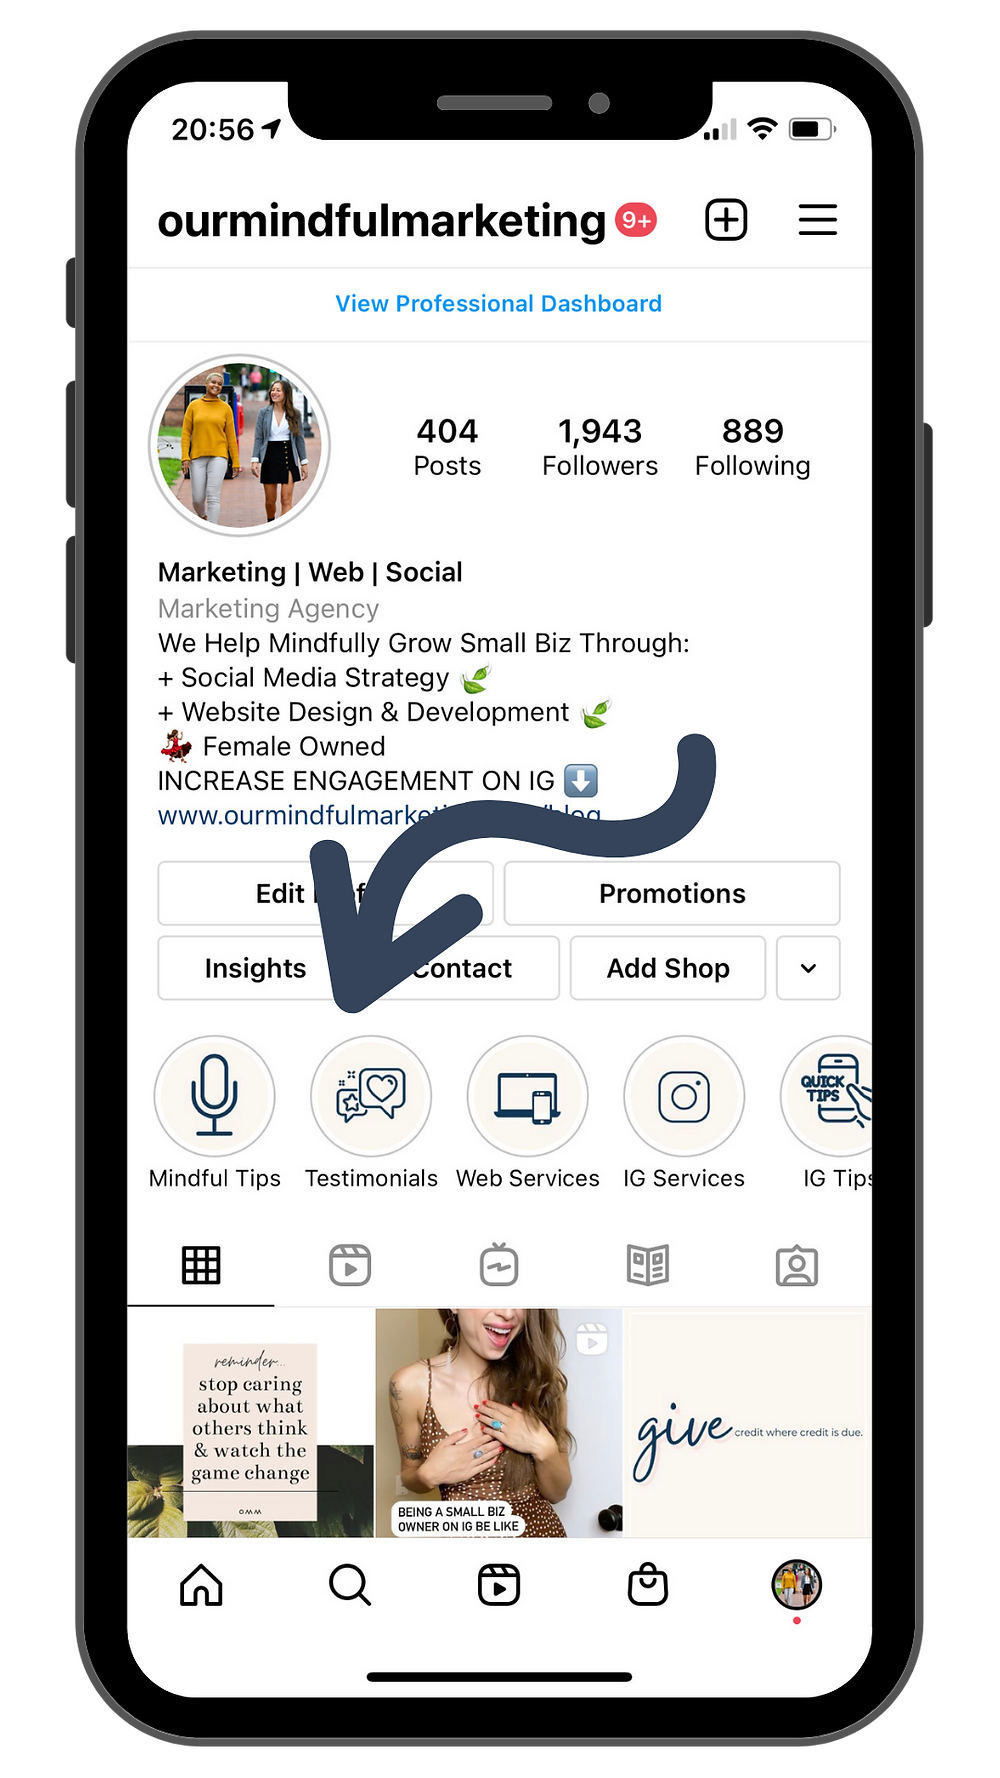 """A screenshot image of the Instagram profile of @ourmindfulmarketing with an arrow specifically pointing to the """"Testimonials' in the Instagram Highlights."""